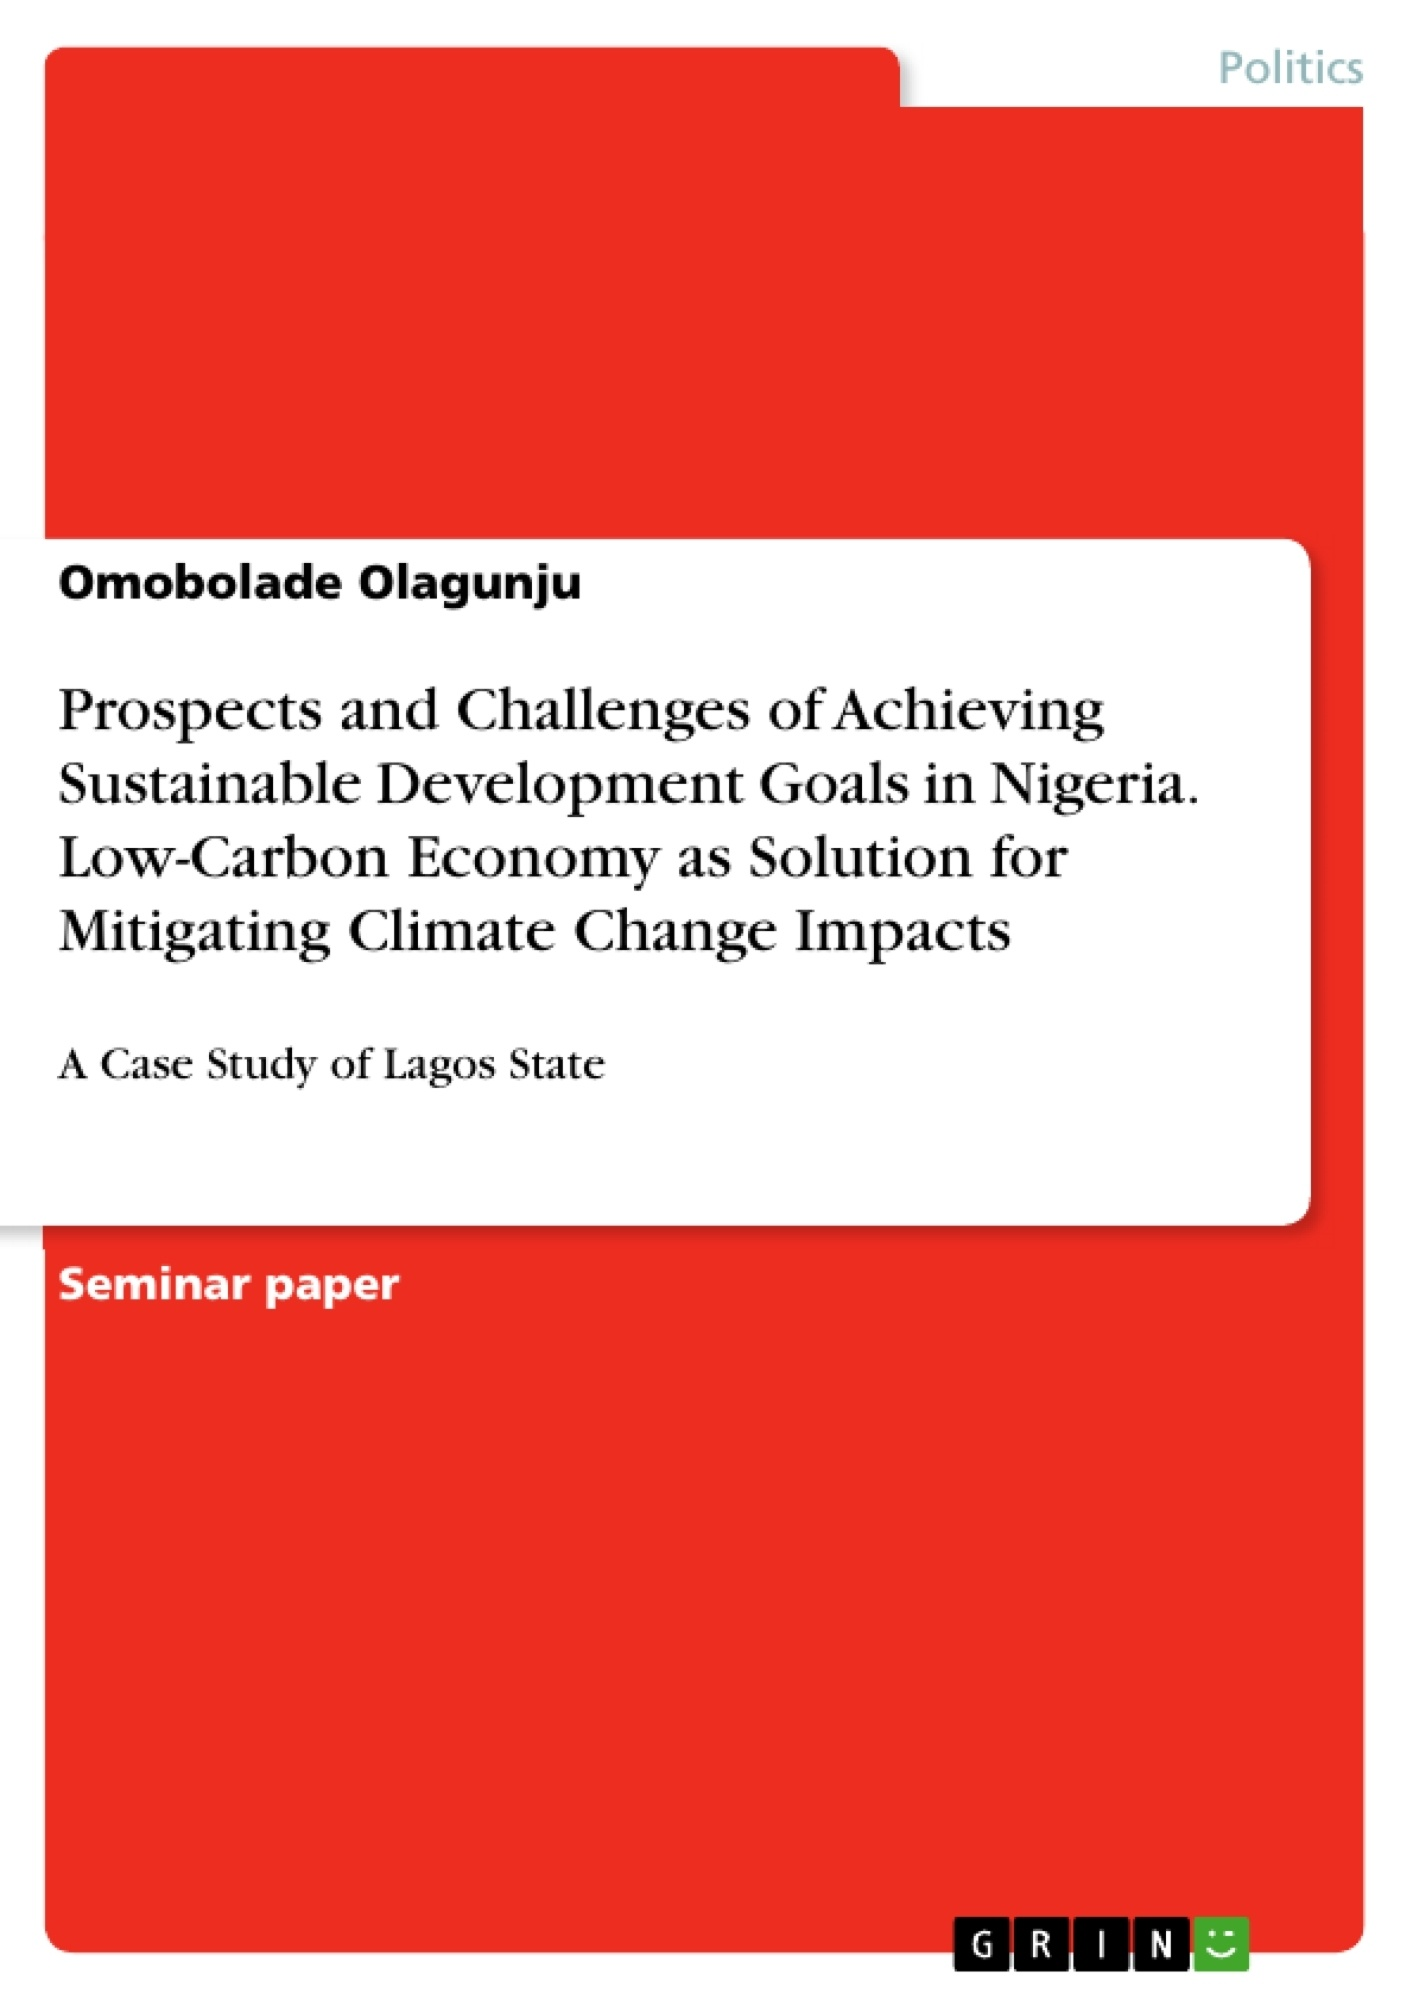 Title: Prospects and Challenges of Achieving Sustainable Development Goals in Nigeria. Low-Carbon Economy as Solution for Mitigating Climate Change Impacts